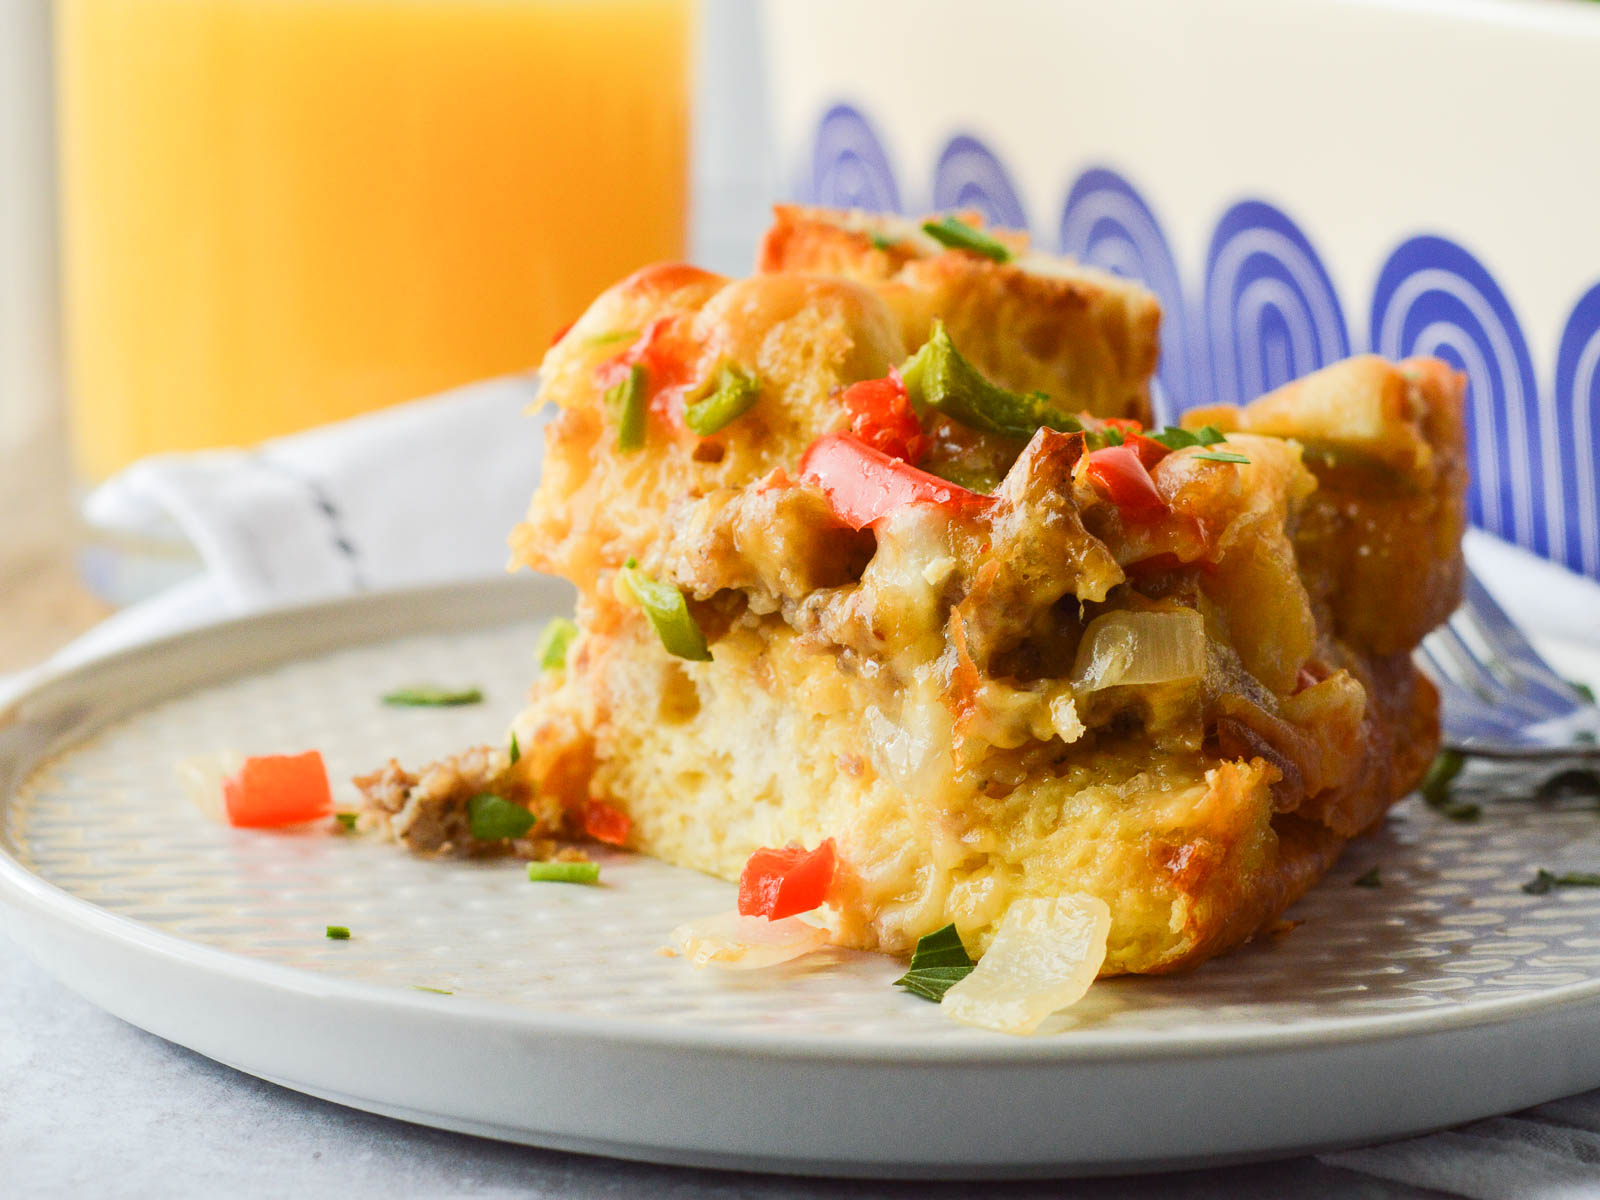 Breakfast Strata with sausage plated with a glass of orange juice in the background. You can see the layers of sausage, peppers, egg and cheese in the baked casserole.